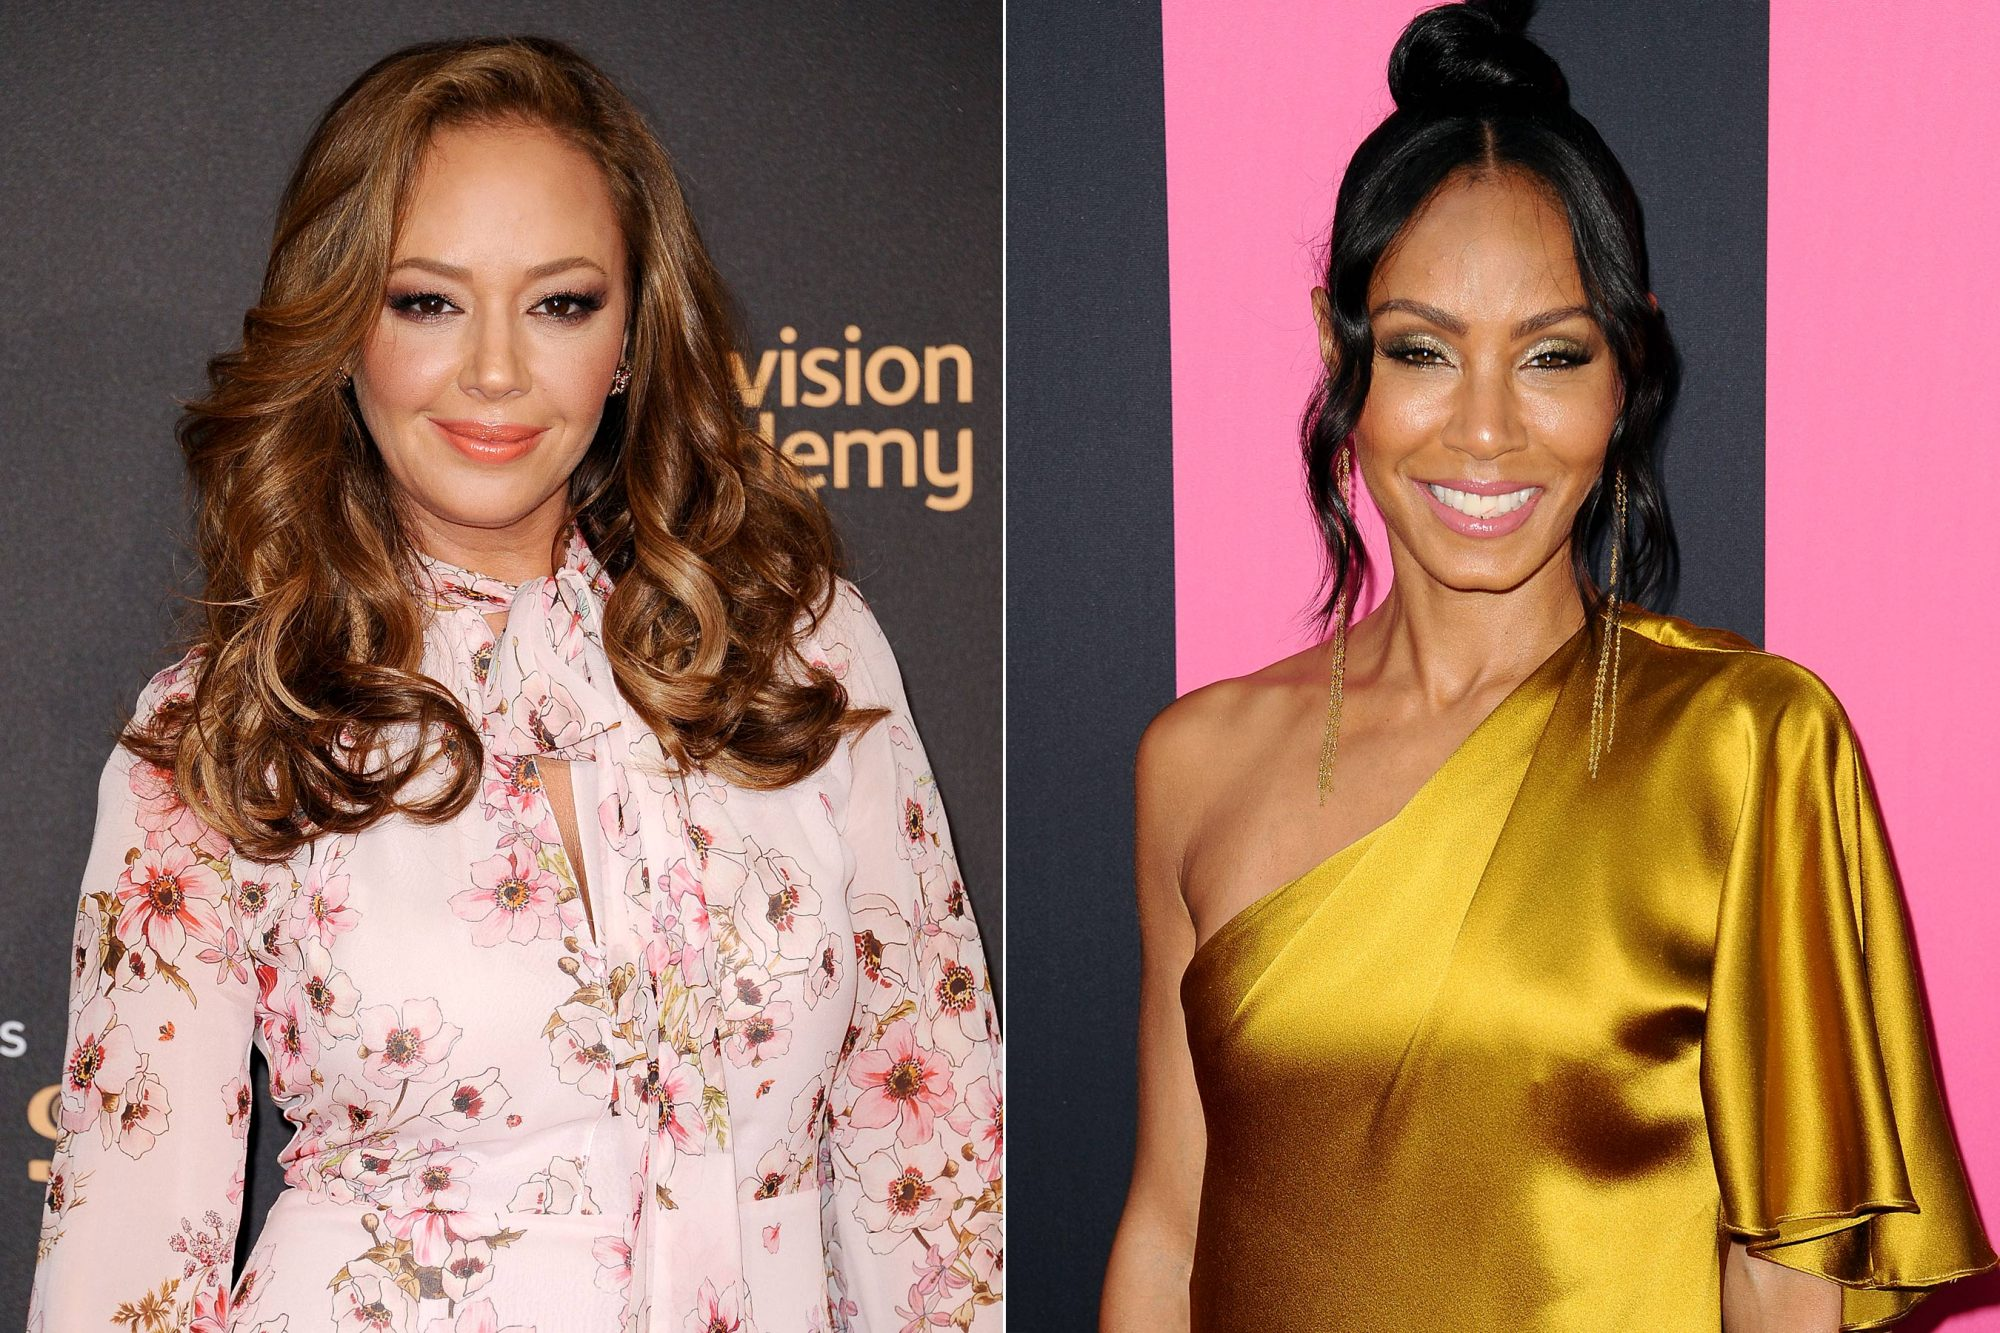 Leah Remini / Jada Pinkett Smith